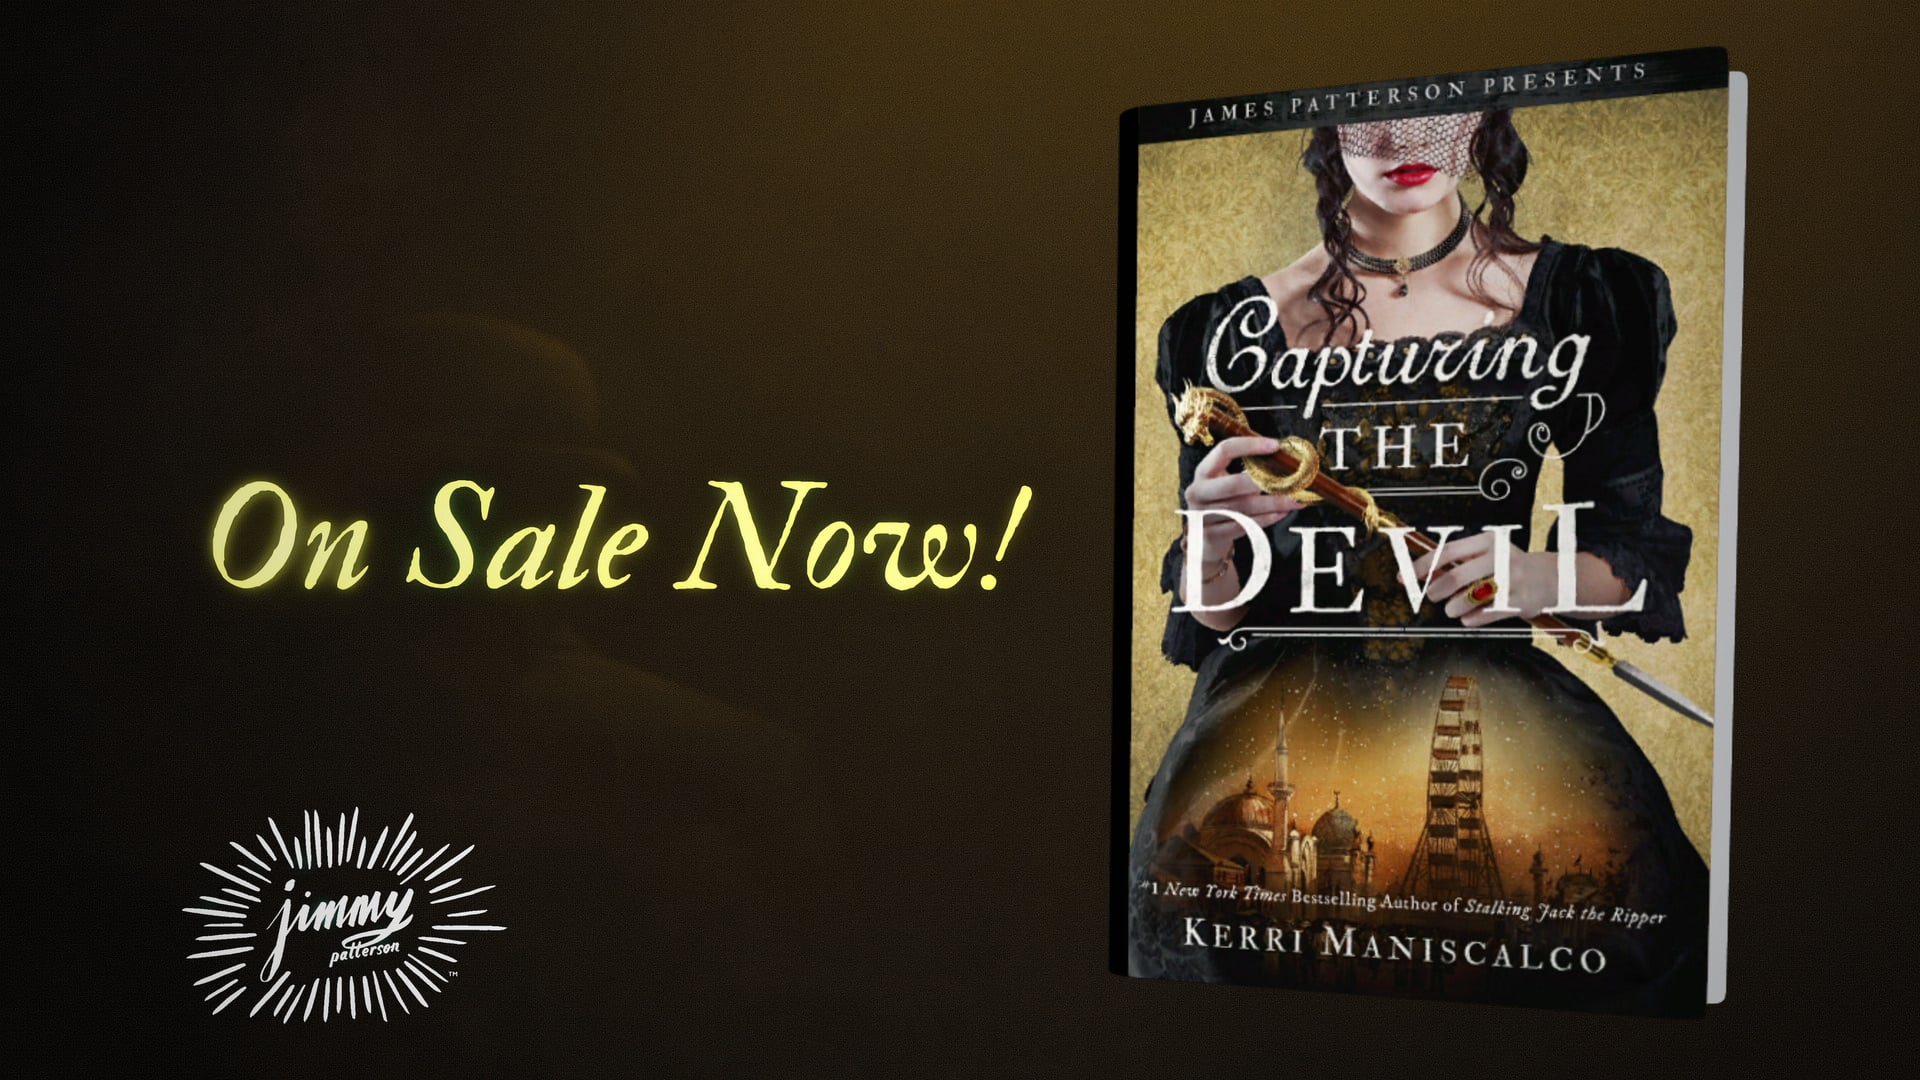 A book cover and book promo for Capturing the Devil